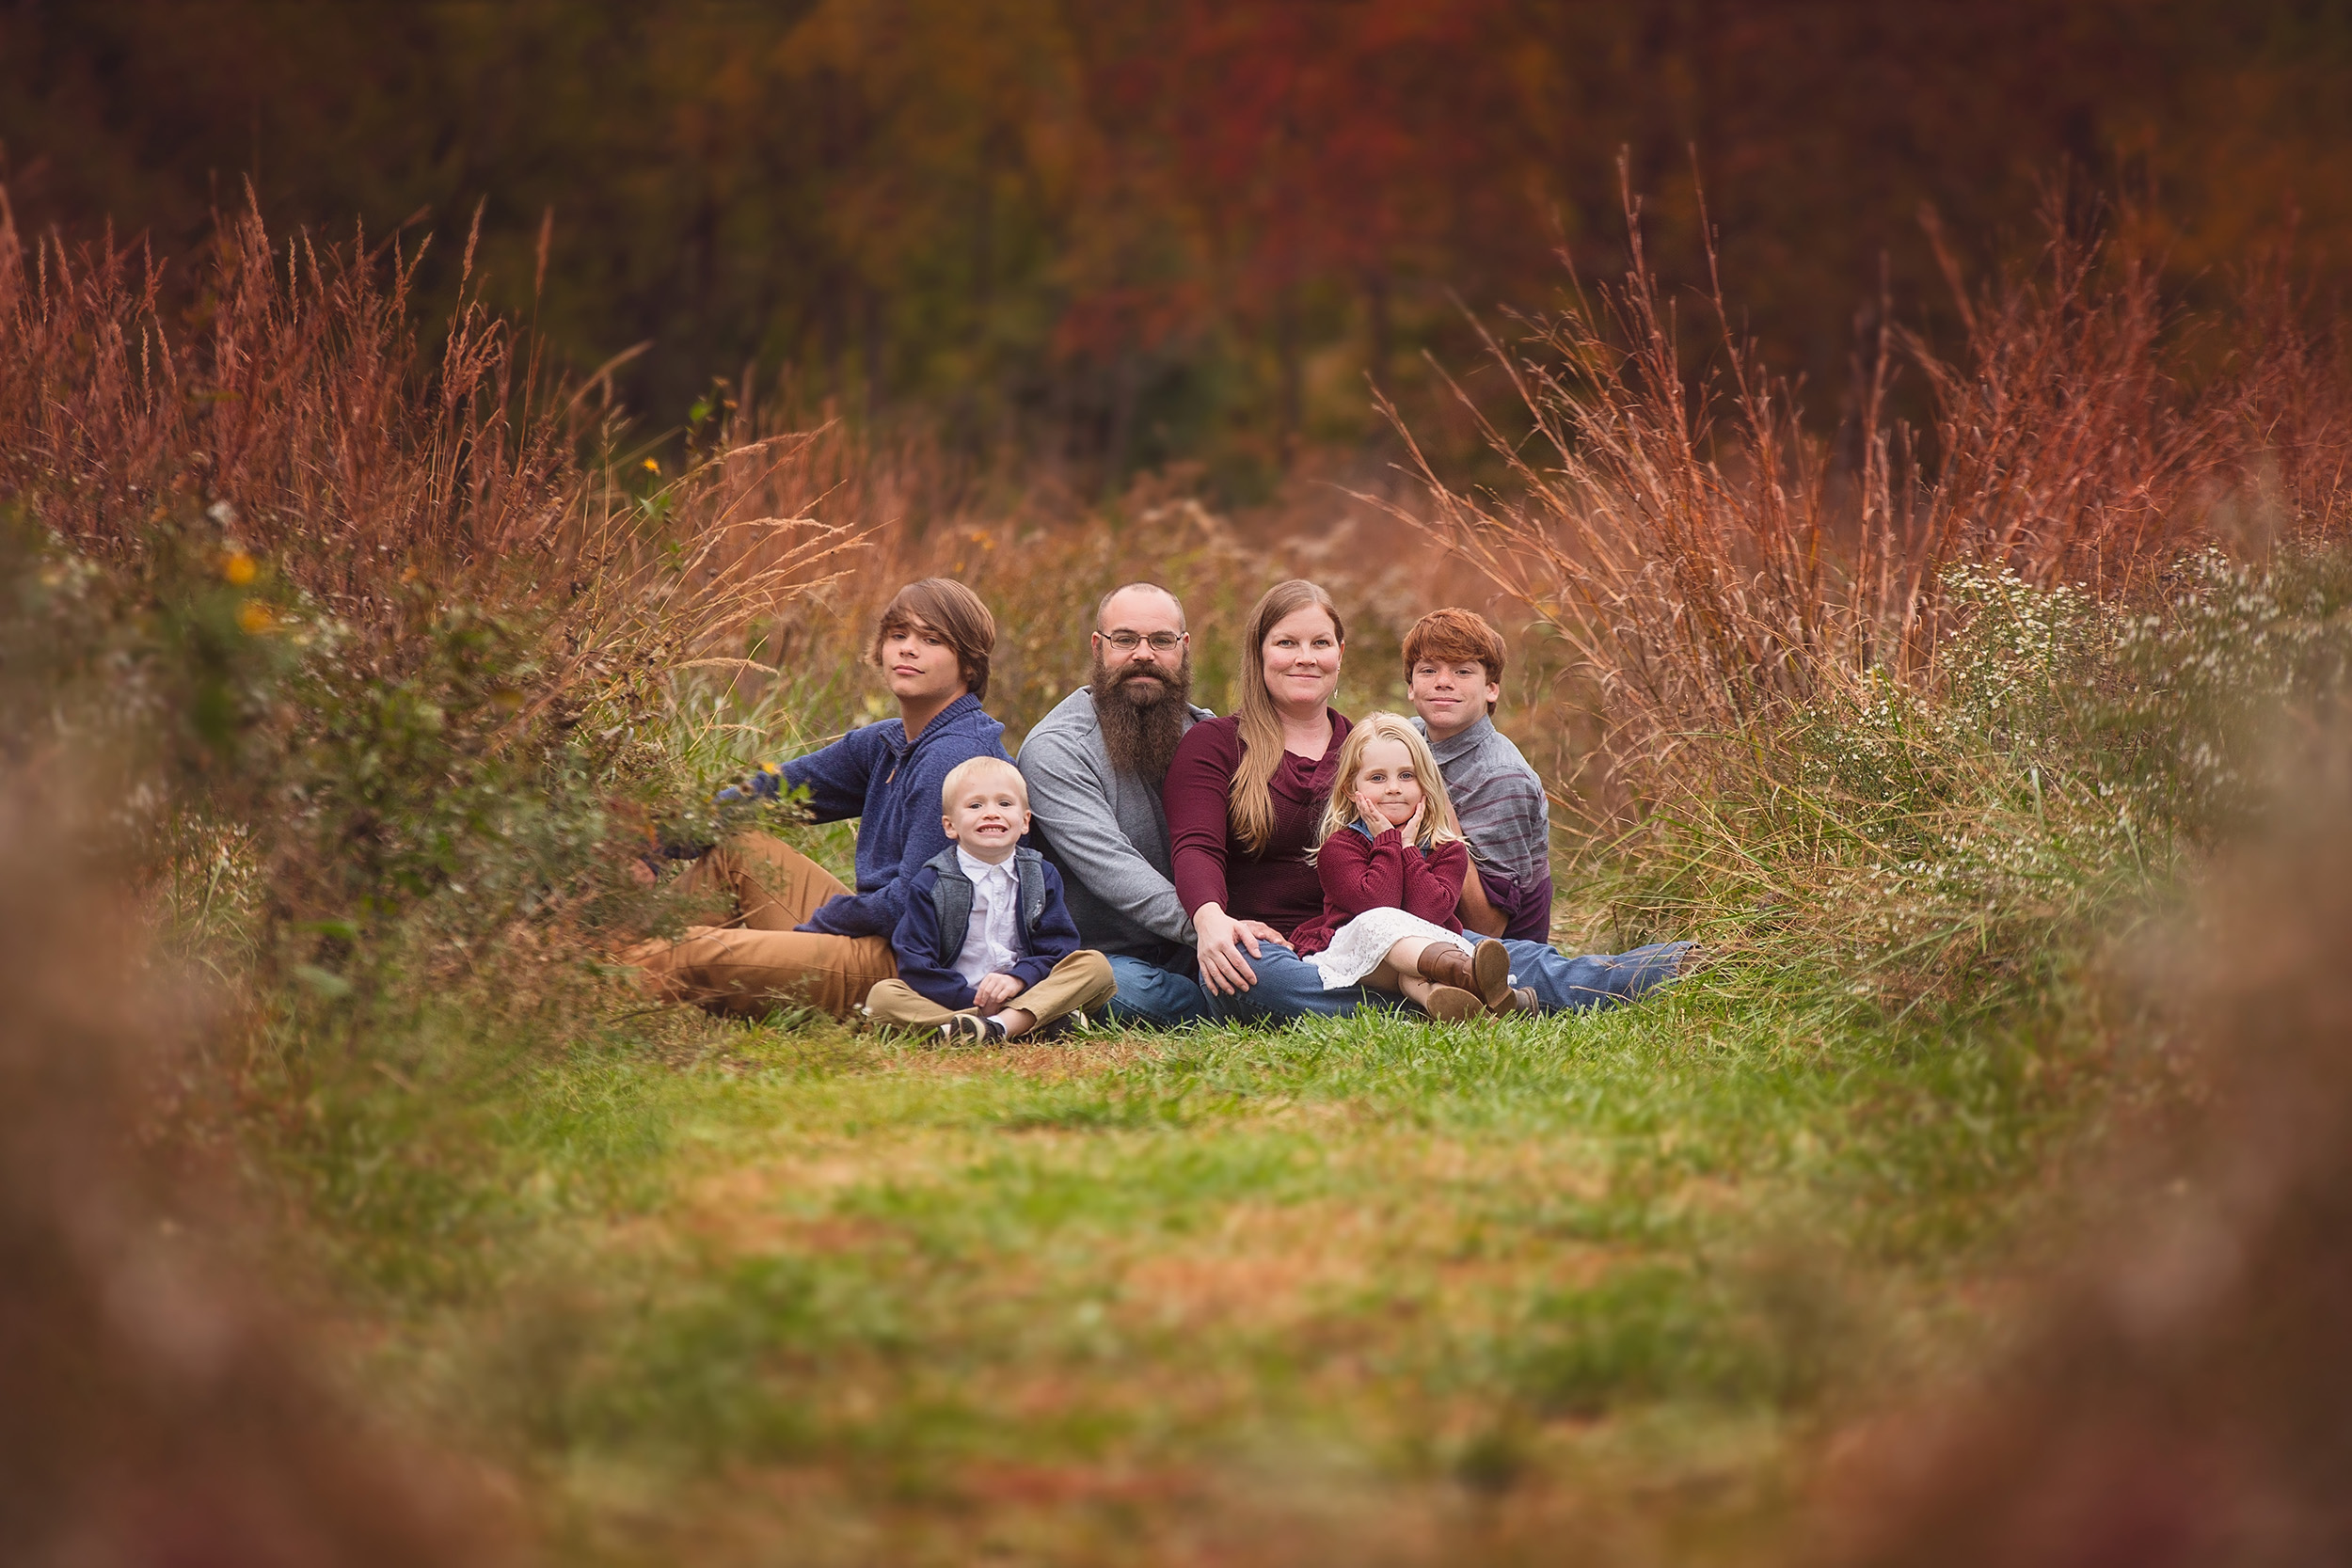 springfield-mo-family-photography.jpg